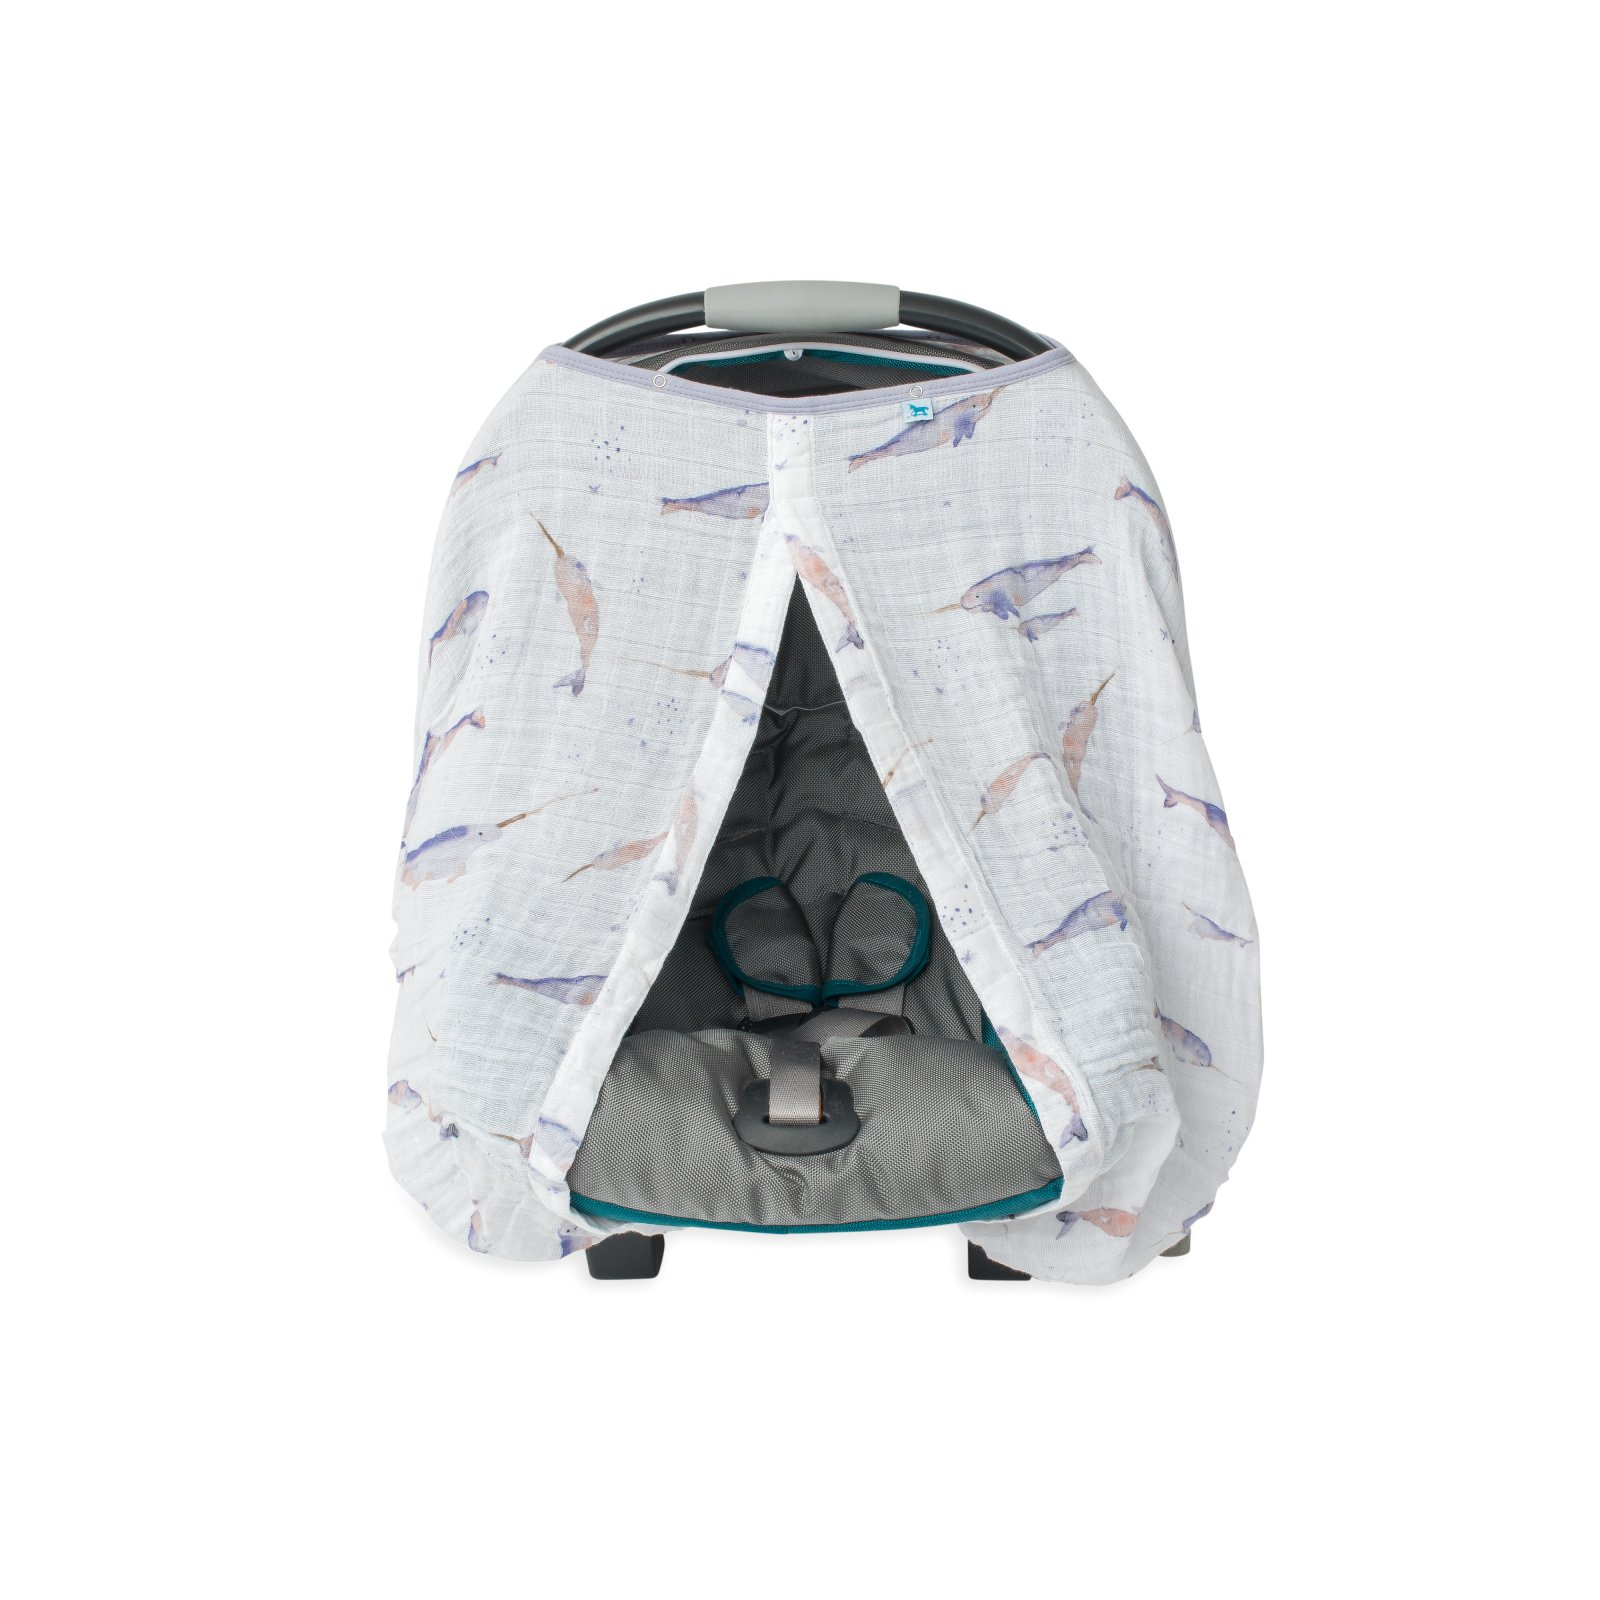 Little Unicorn Cotton Muslin Car Seat Canopy - Narwhal